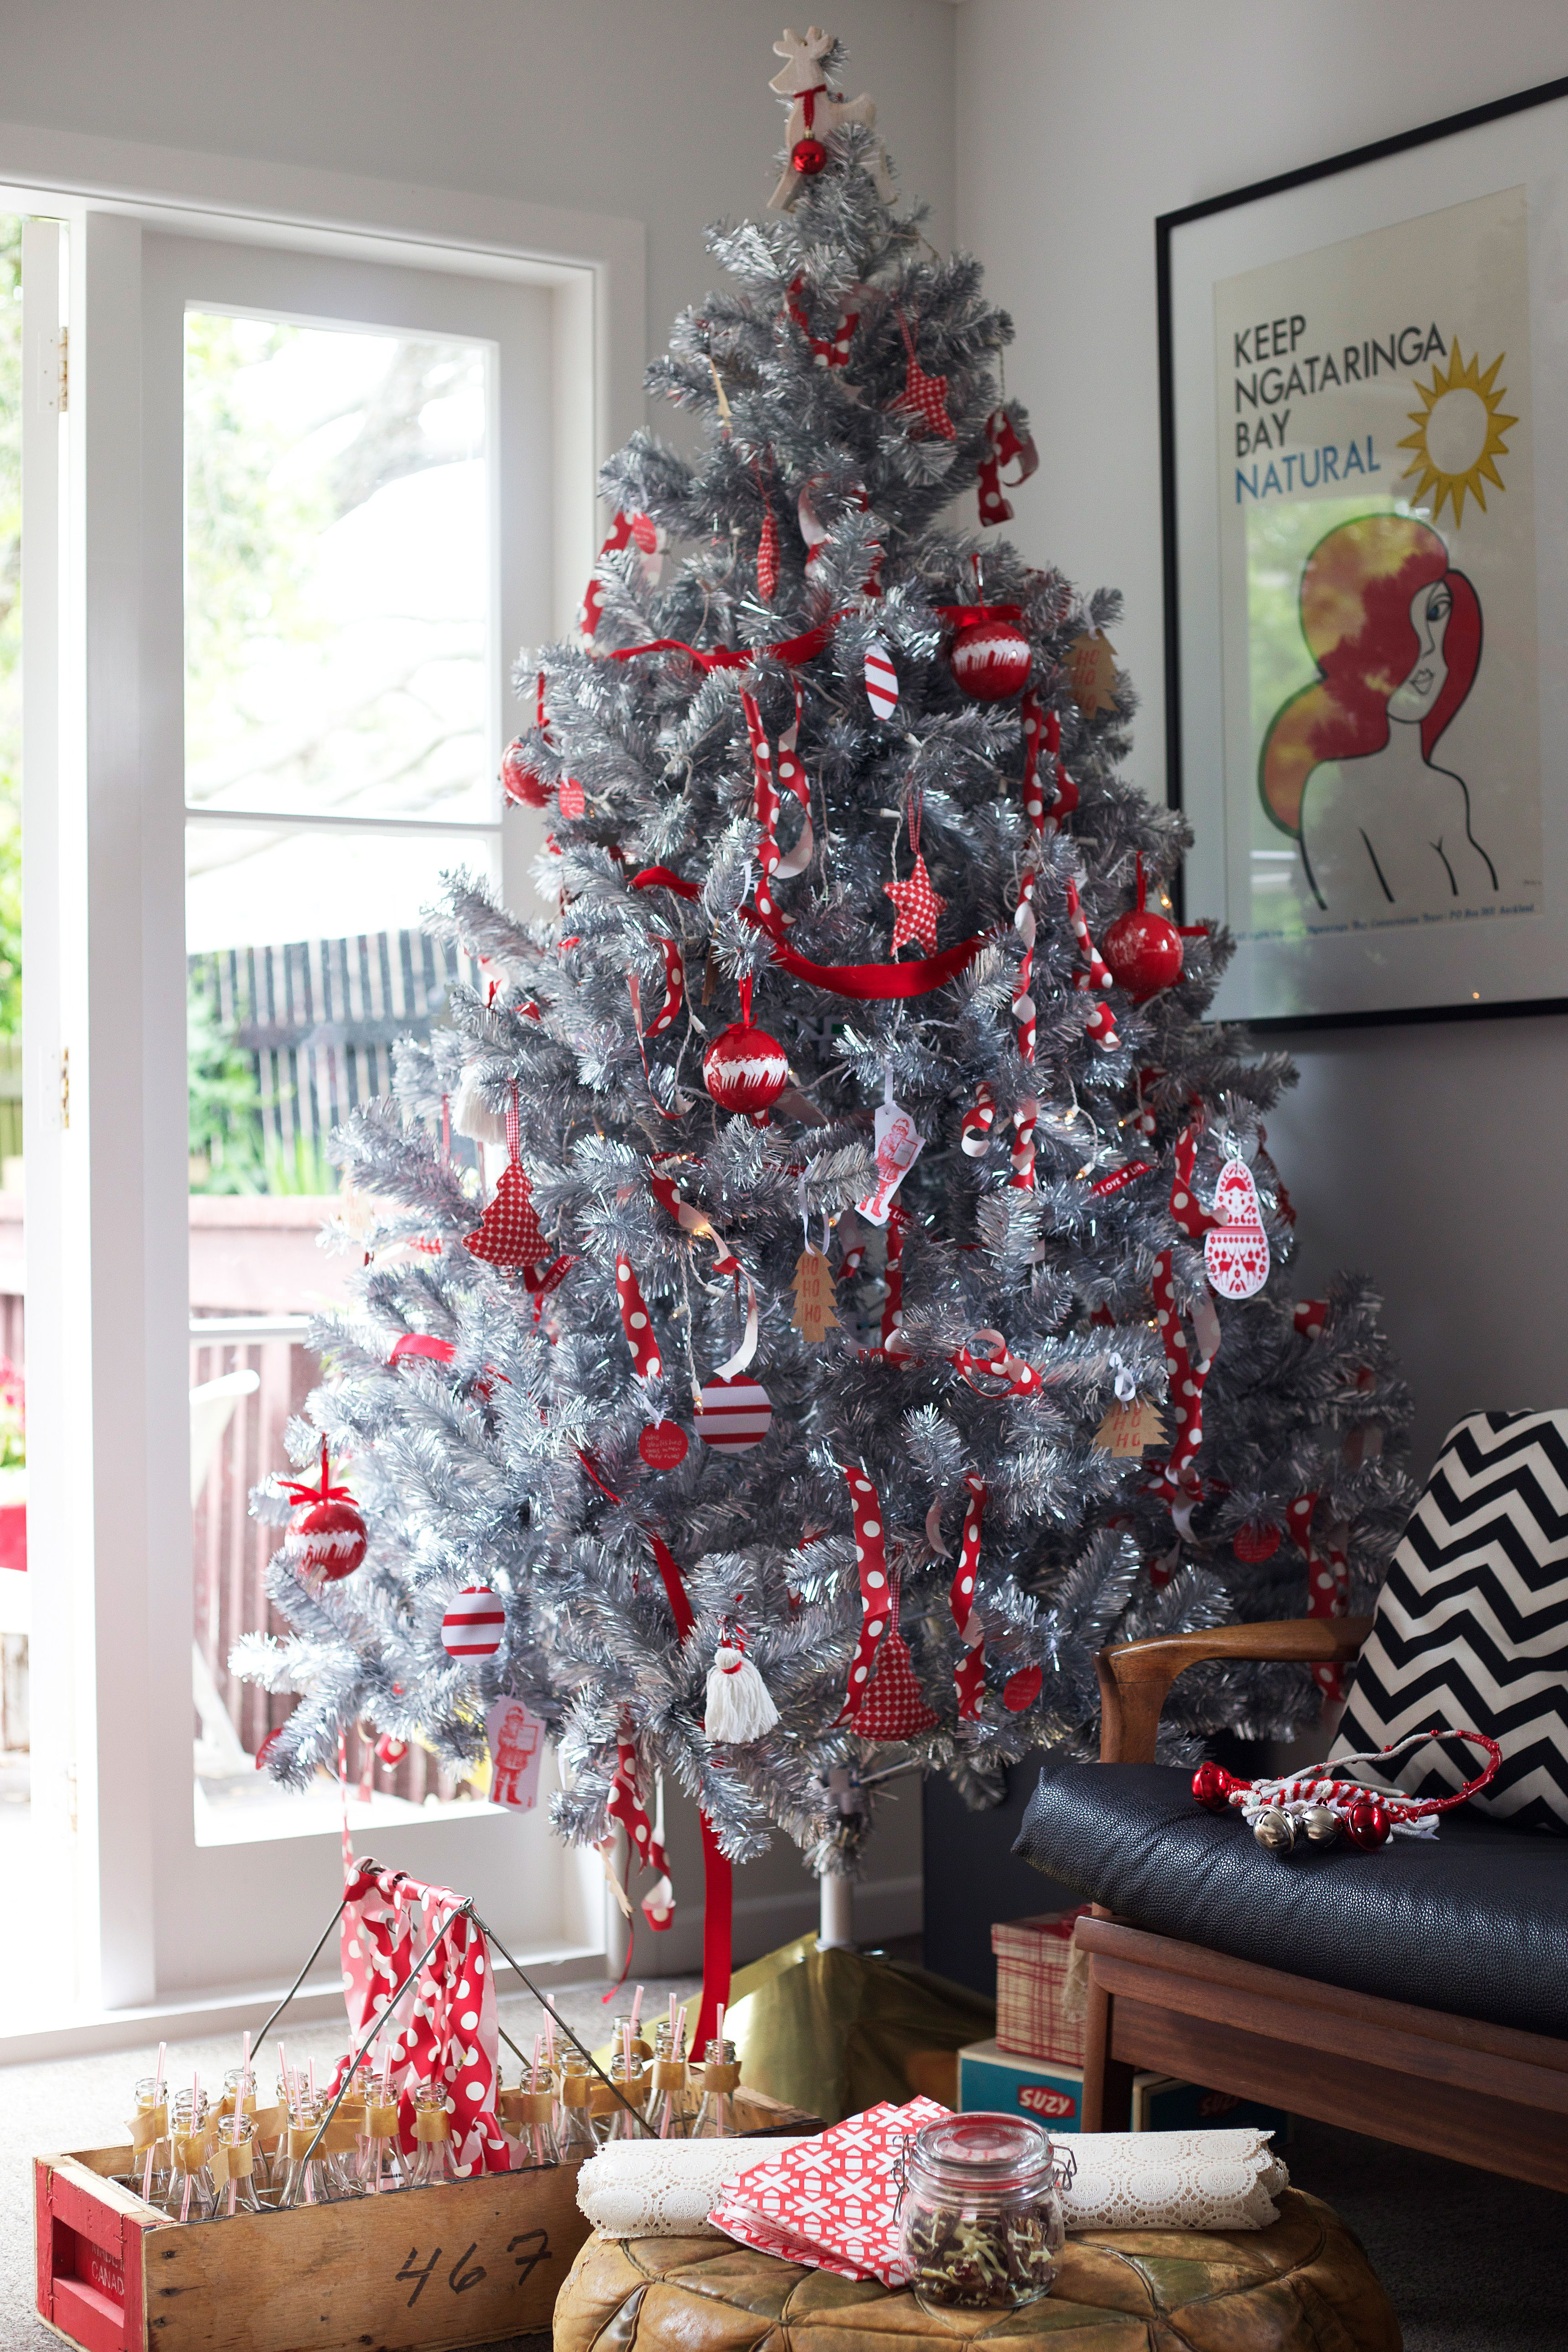 #Christmas Tree #Christmas Decorations #Silver Xmas Tree #Red Silver And